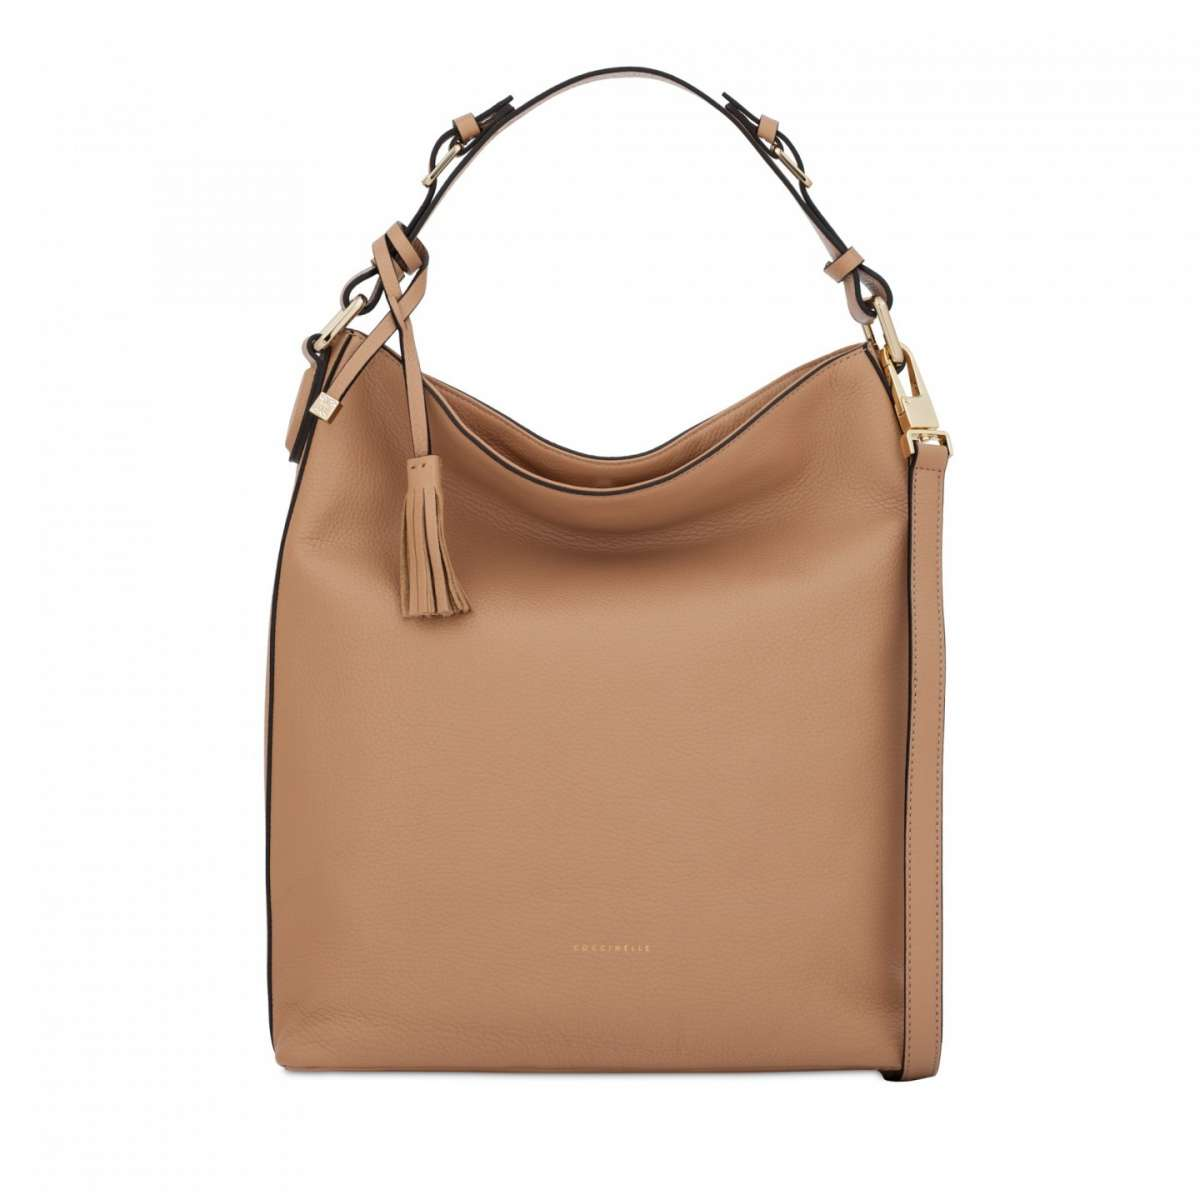 Borsa a sacca in pelle beige Coccinelle